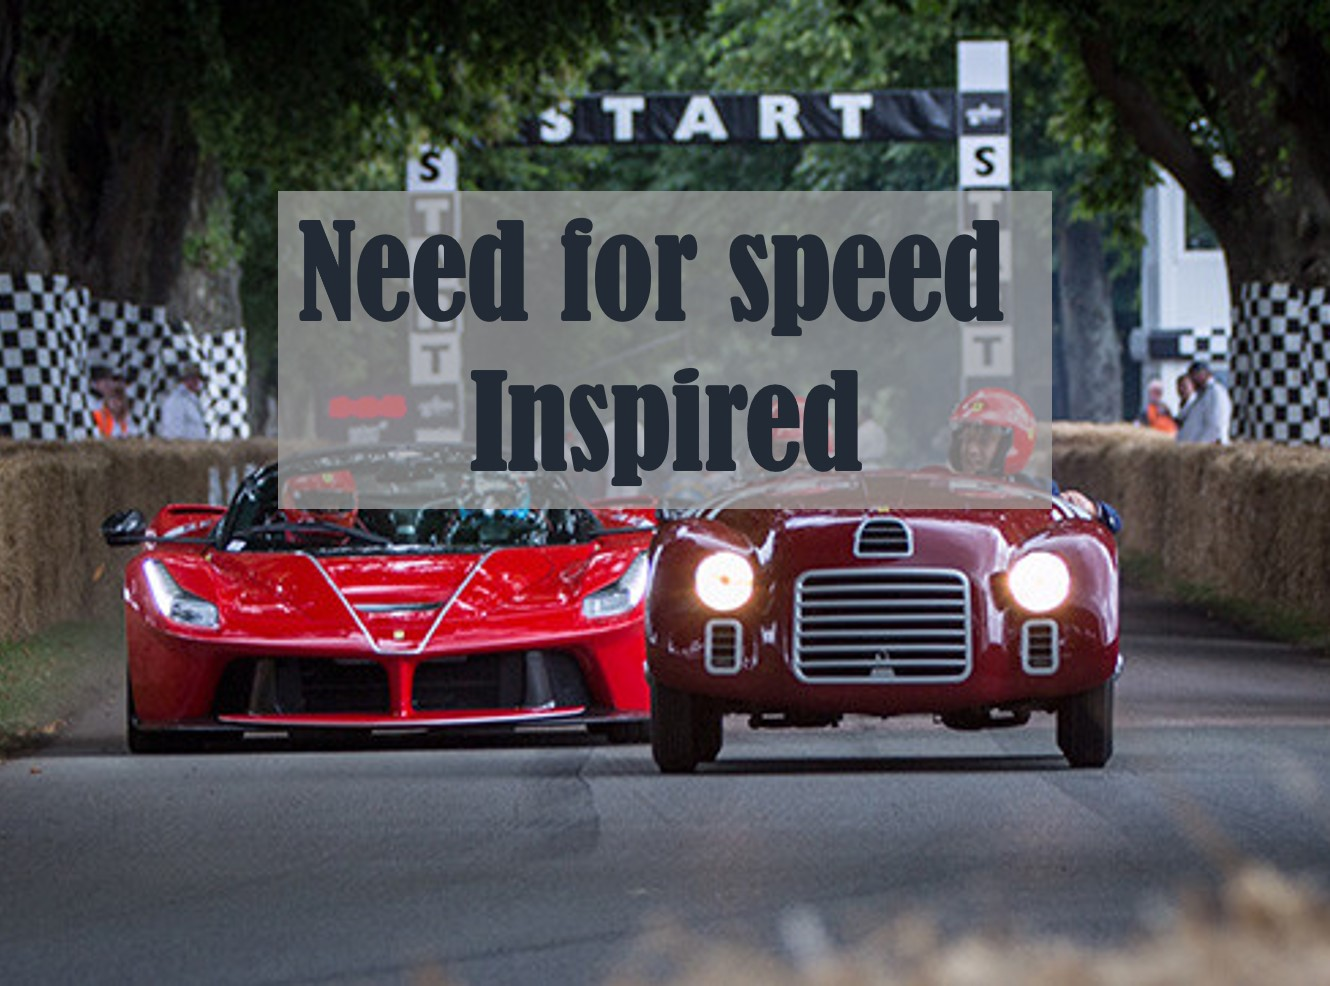 INSPIRED BY THE ESTATE OF GOODWOOD. WE PROVIDE 'NEED FOR SPEED' THINKING. AGAIN THIS IS A LUXURY OFF SITE IGNITION WORKSHOP PROGRAM, TAILORED TO YOUR NEEDS AND BUDGET.